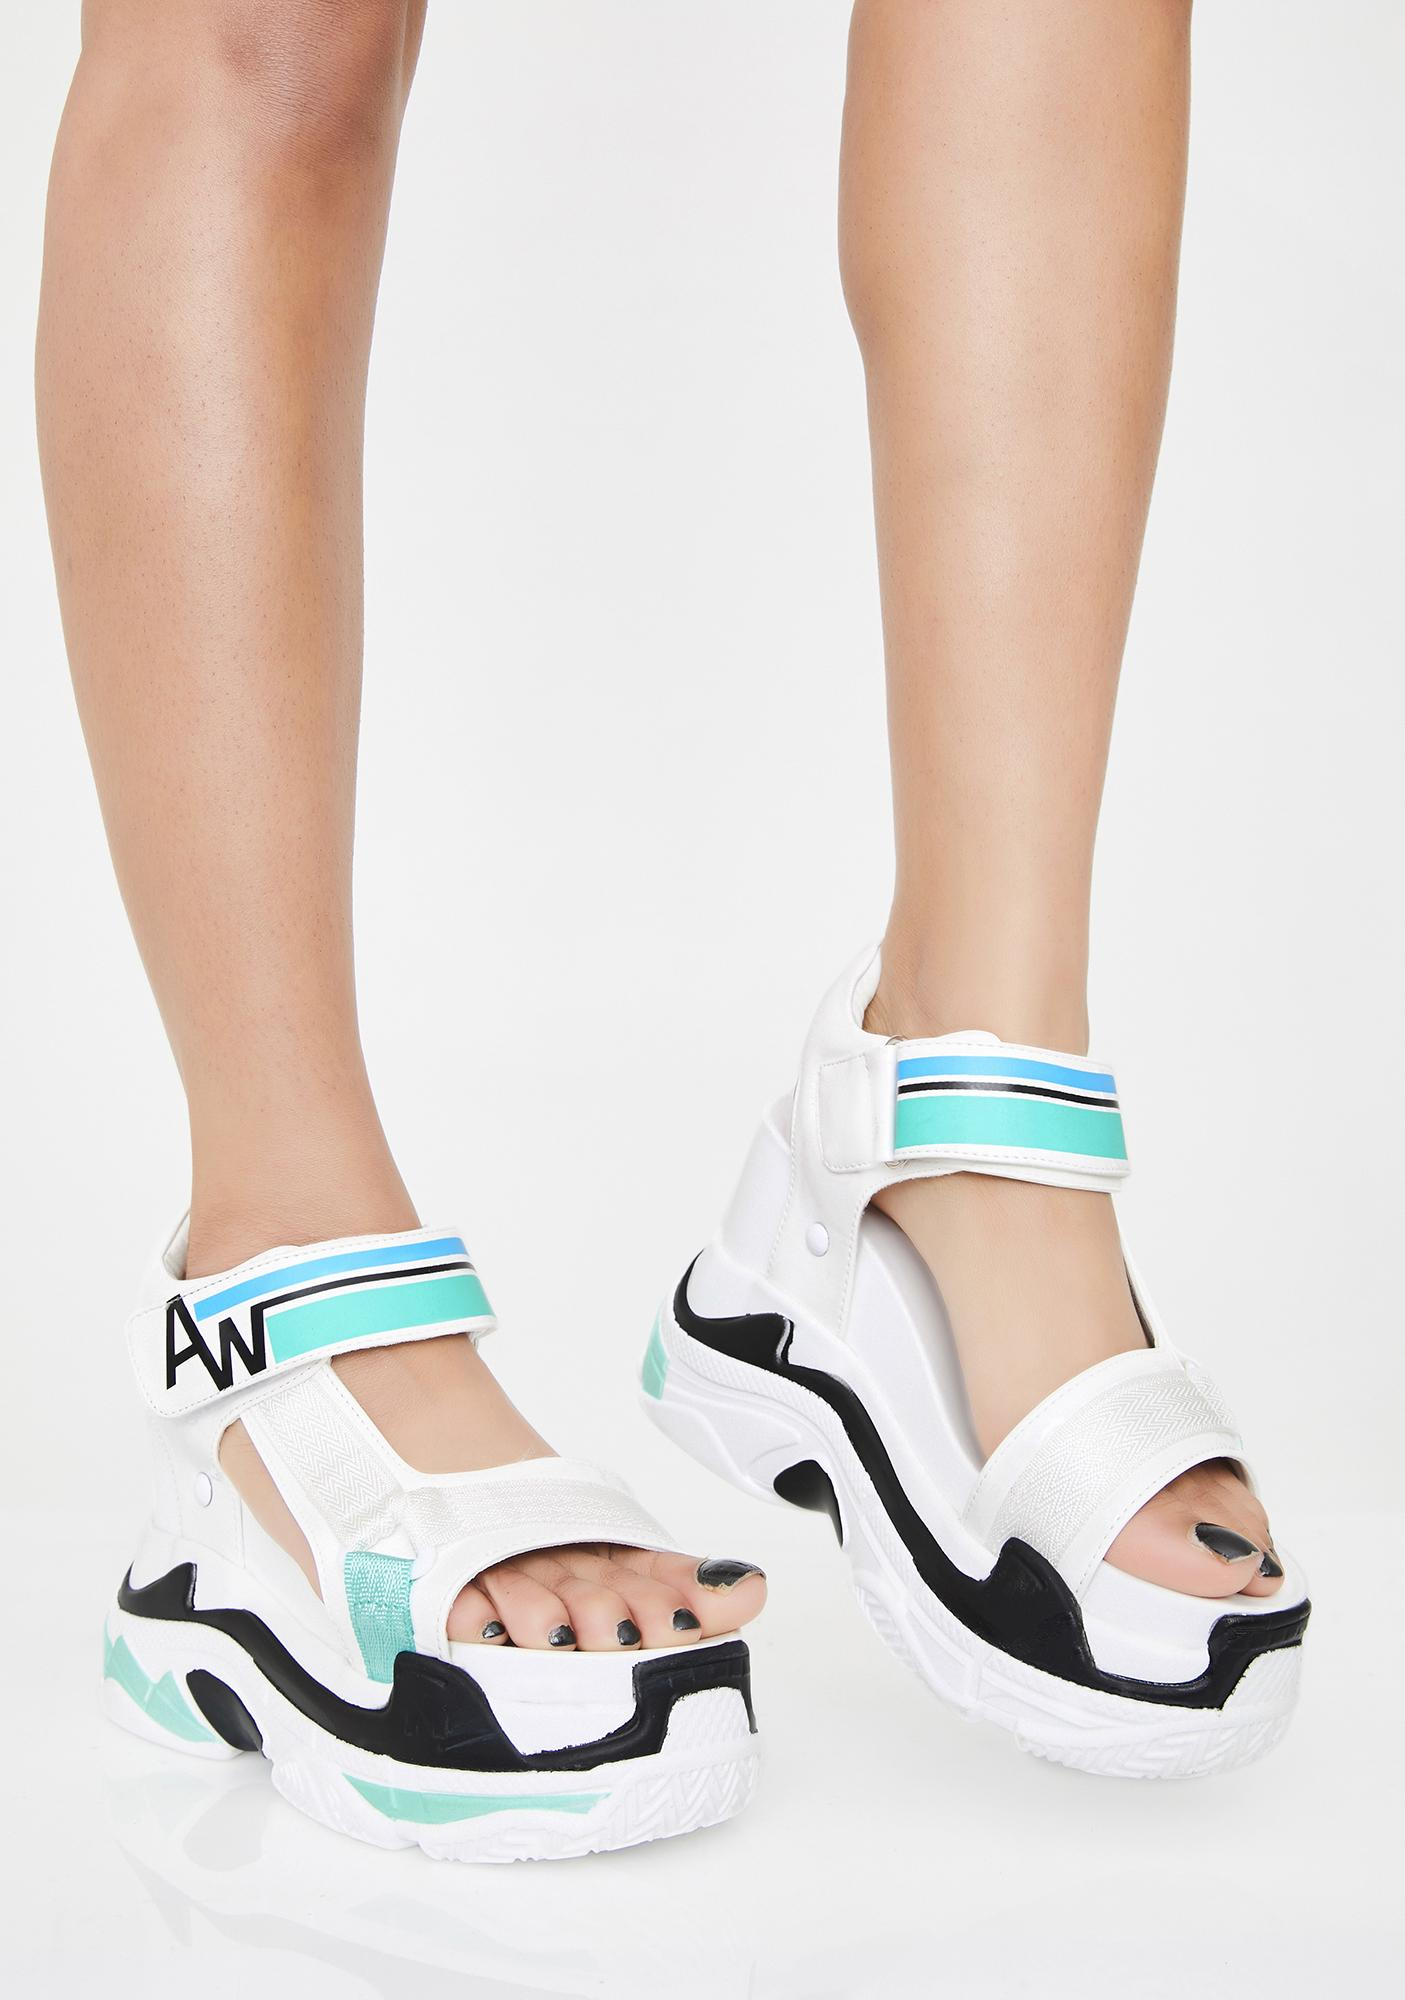 Anthony Wang Frosted Pop Life Platform Sandals